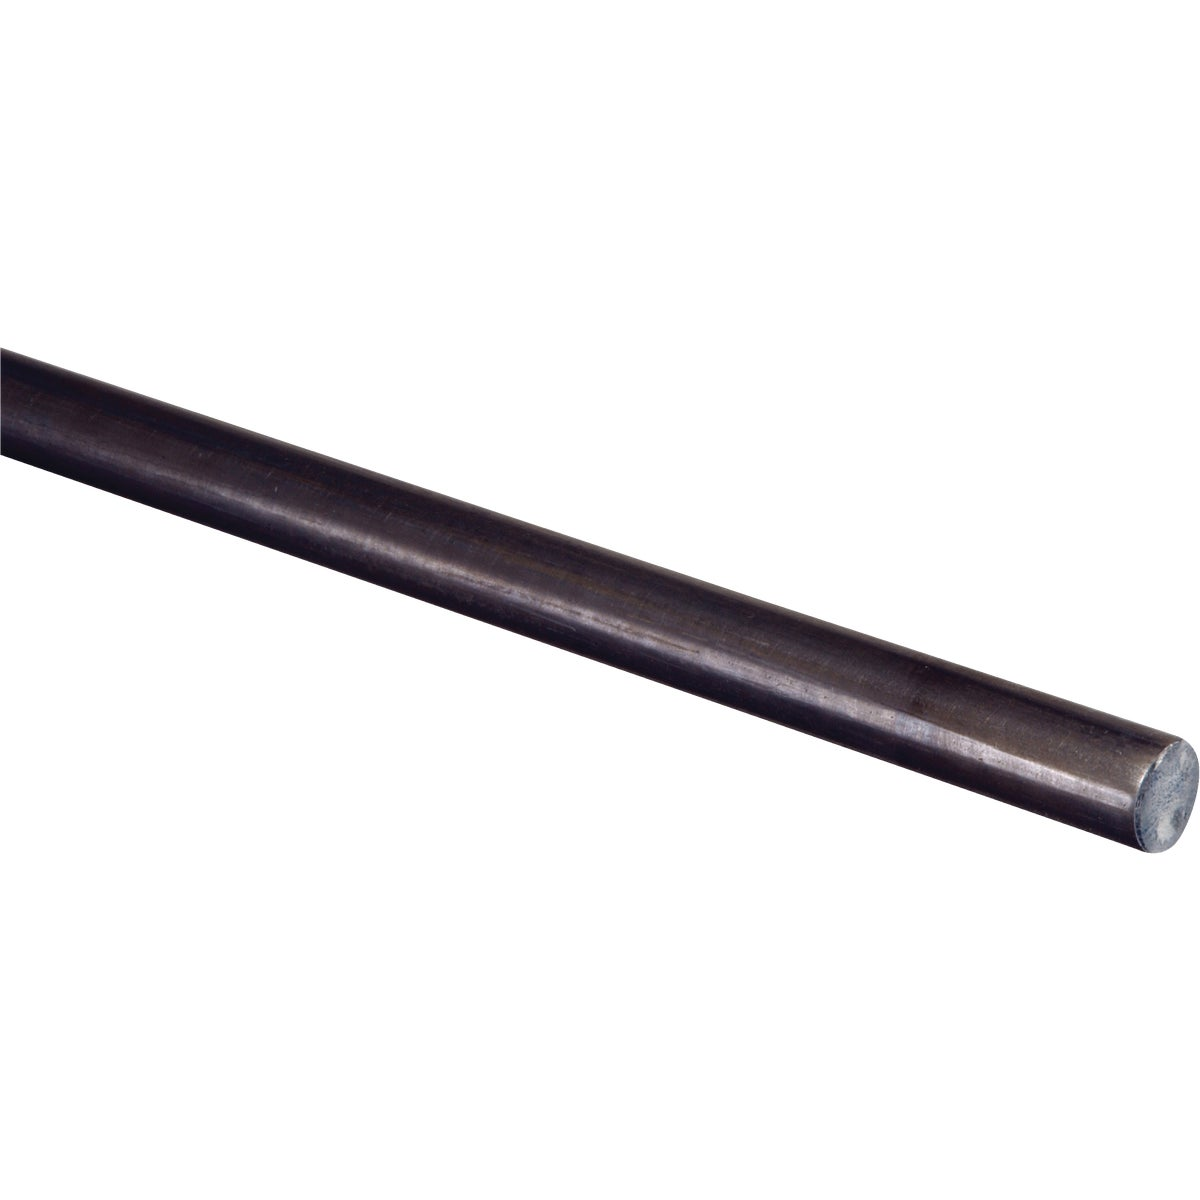 1/2X48 PS SMOOTH ROD - N215368 by National Mfg Co